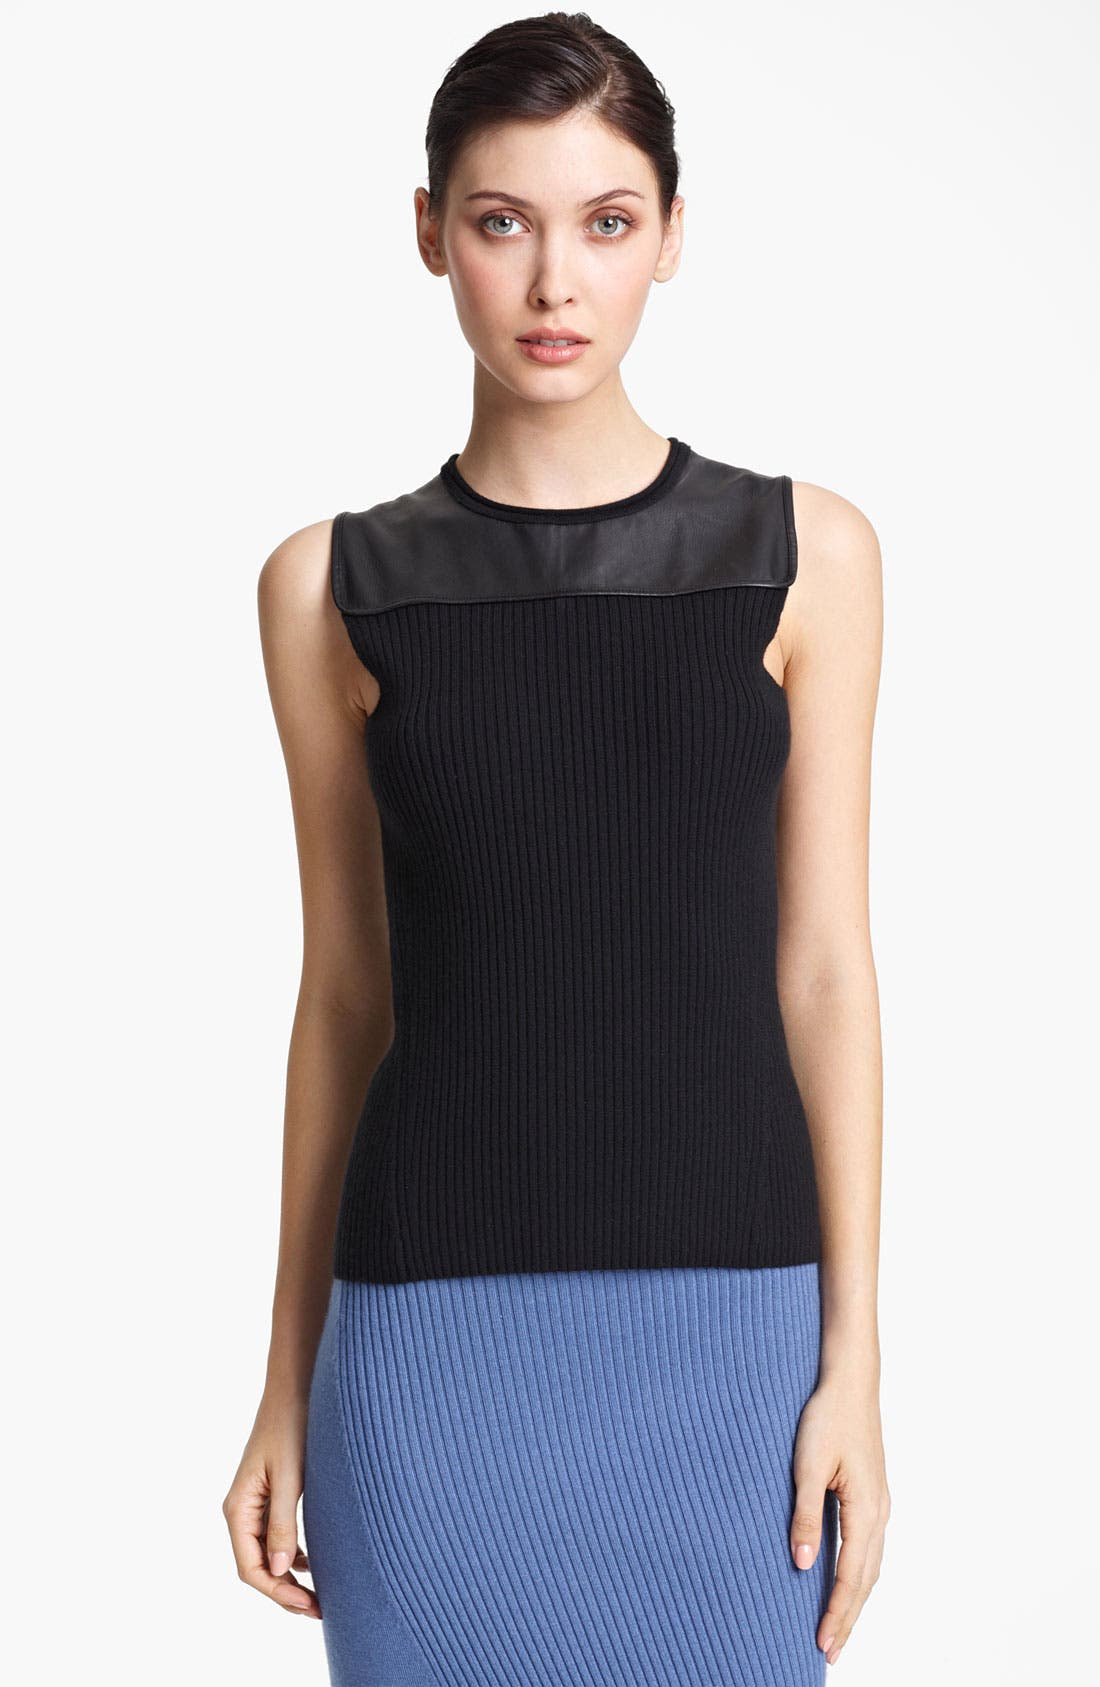 Alternate Image 1 Selected - Reed Krakoff Leather Yoke Knit Top